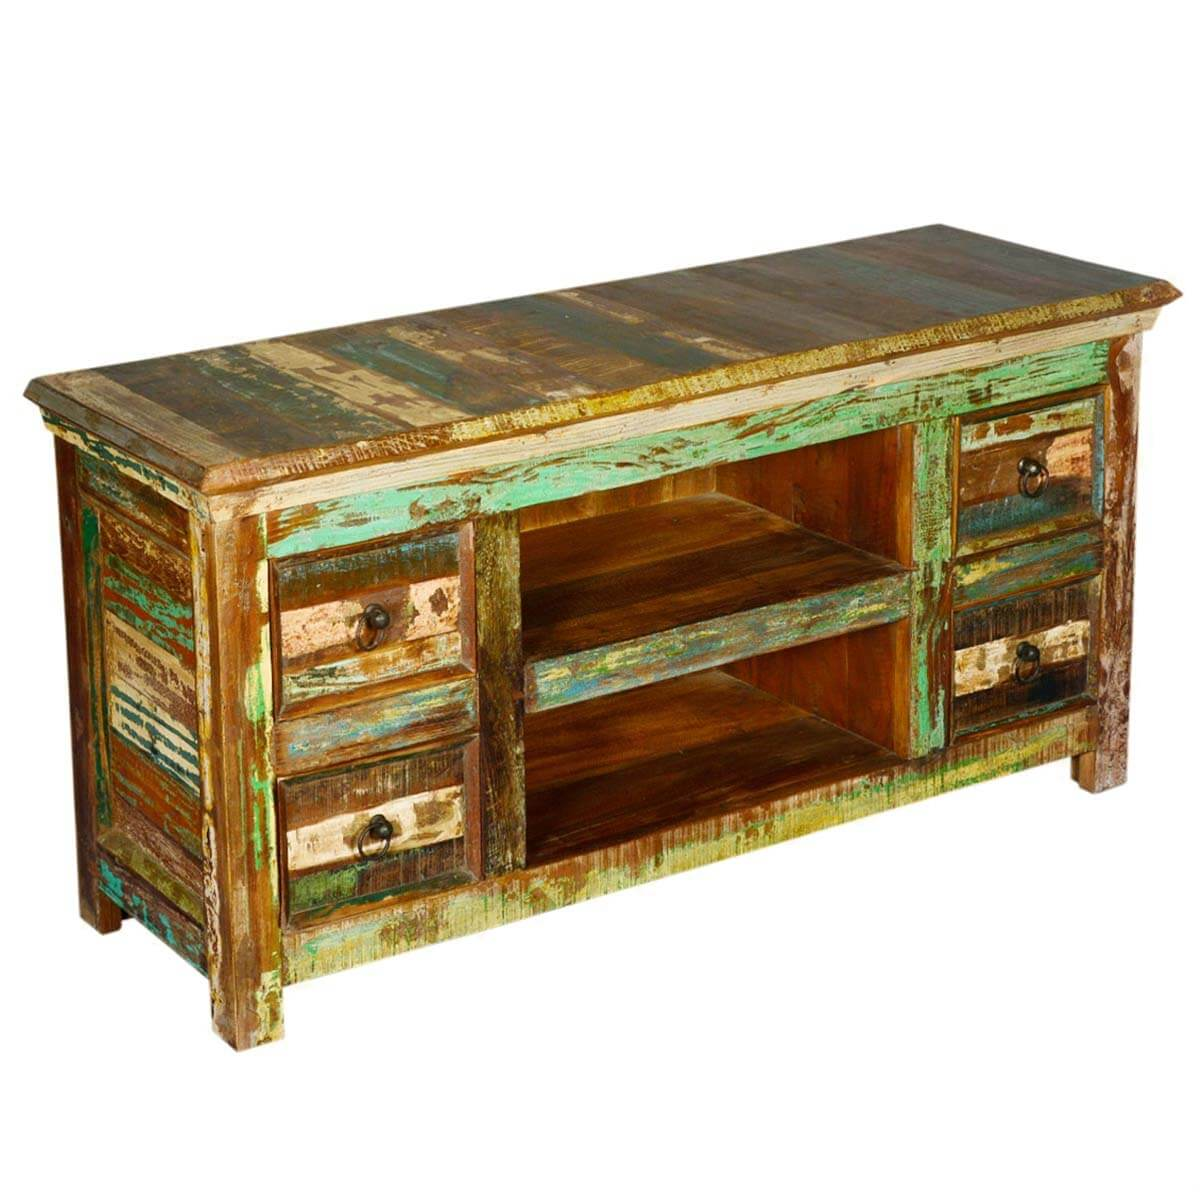 Reclaimed wood furniture drawer rustic tv stand media